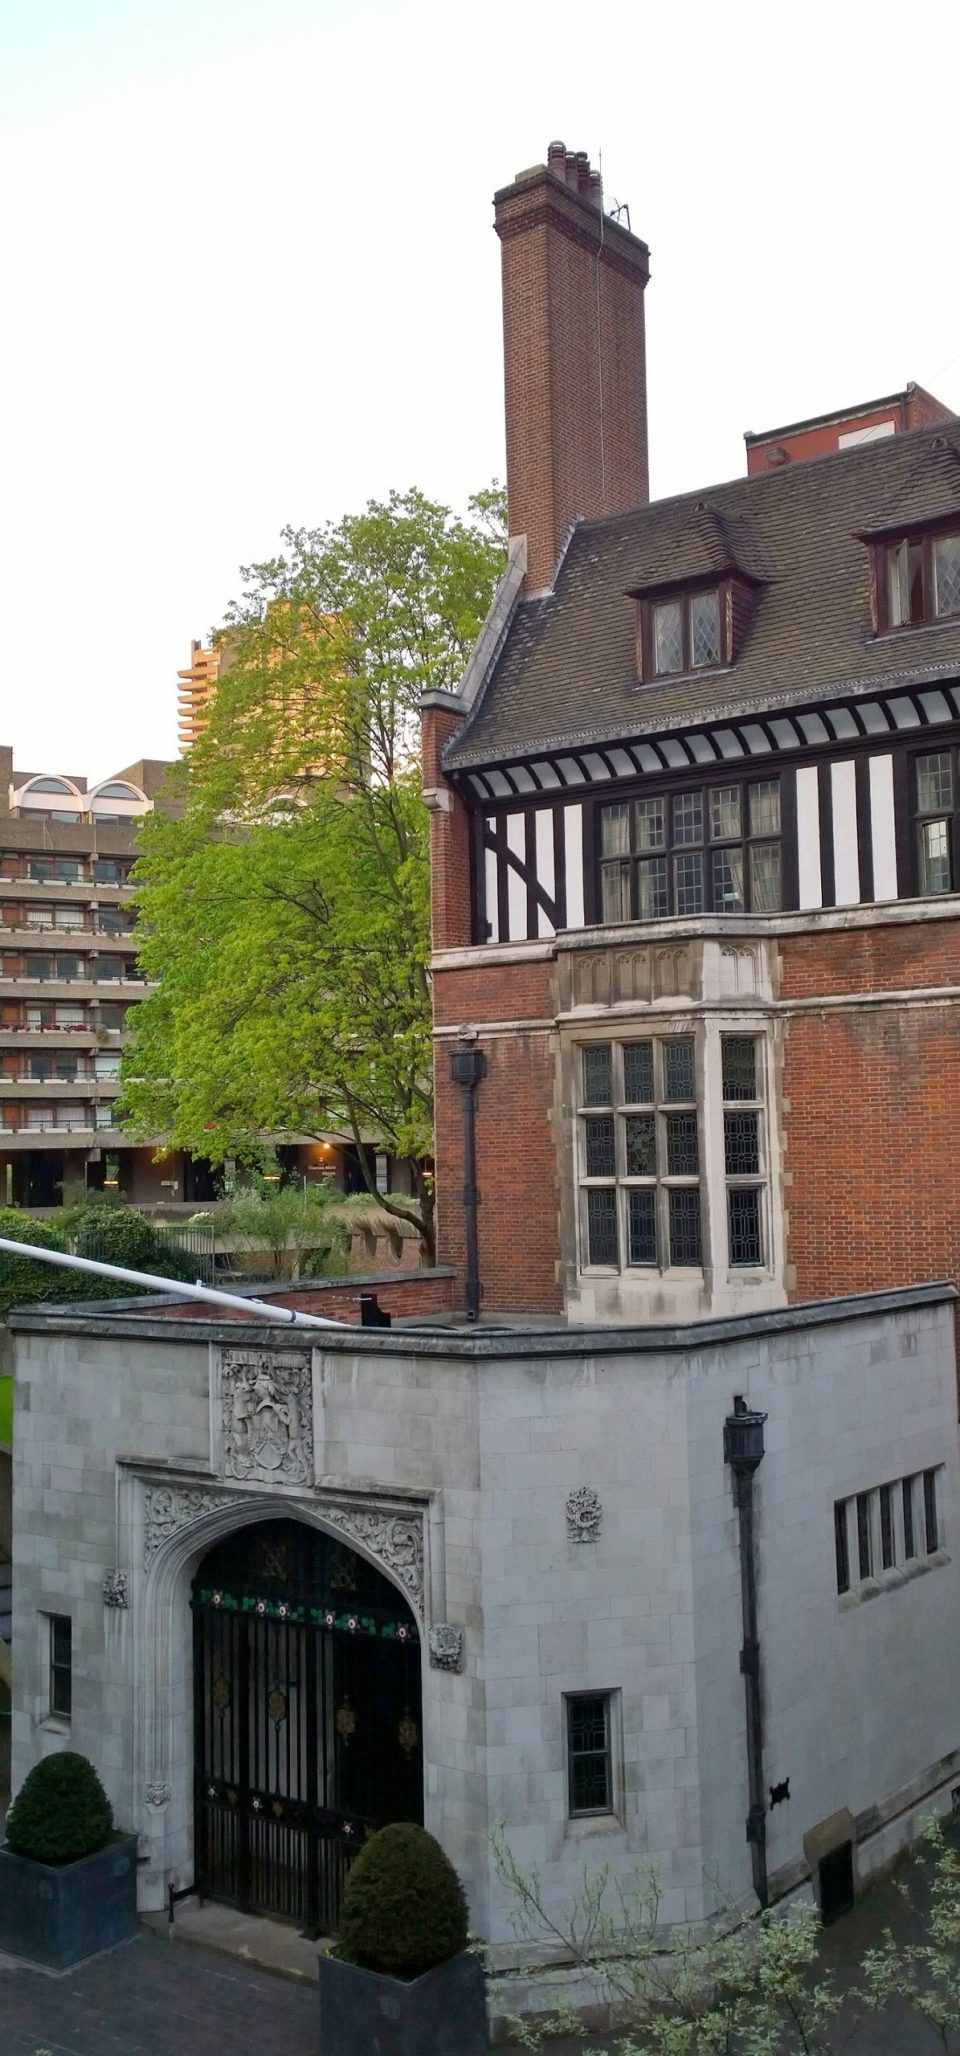 The Ironmongers Hall, an unexpected sight amongst the confines of the Barbican